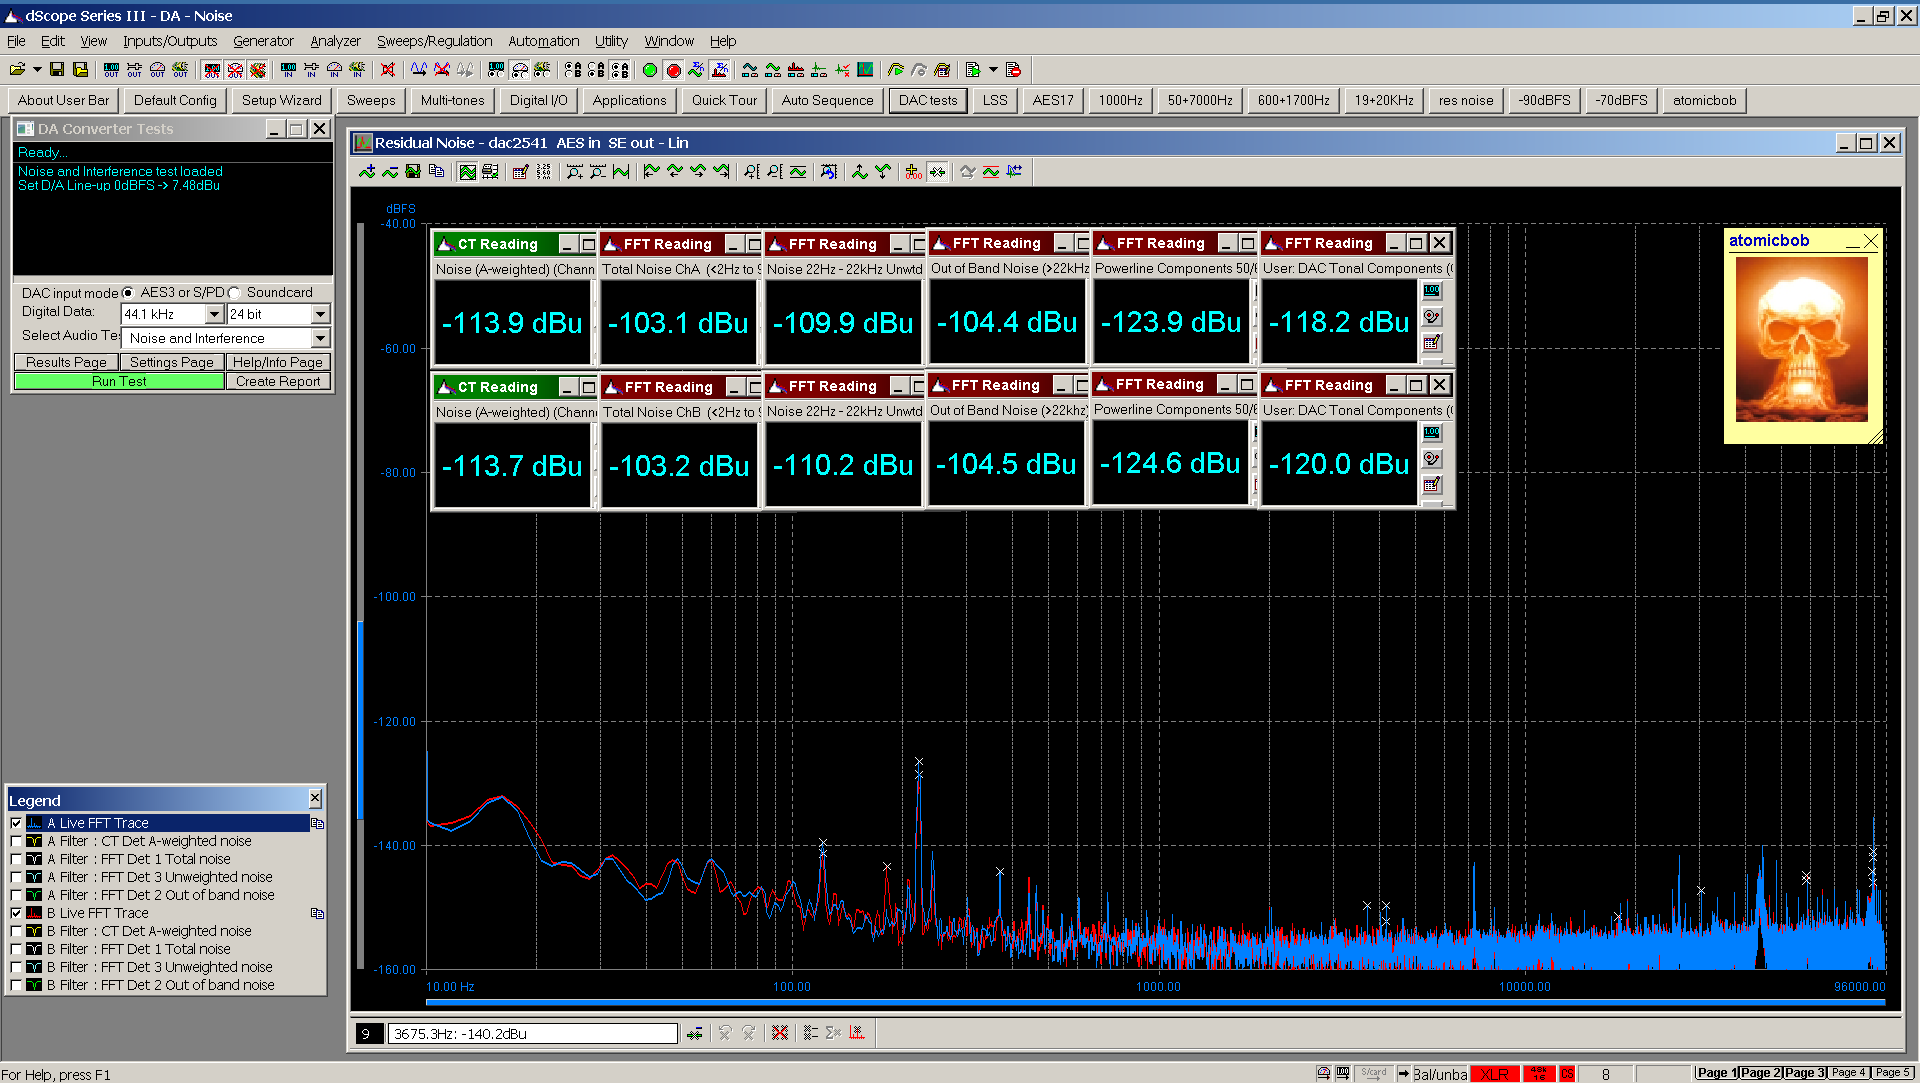 06 20210124 dac2541 residual noise FFT AES SE - 160 dB range.png